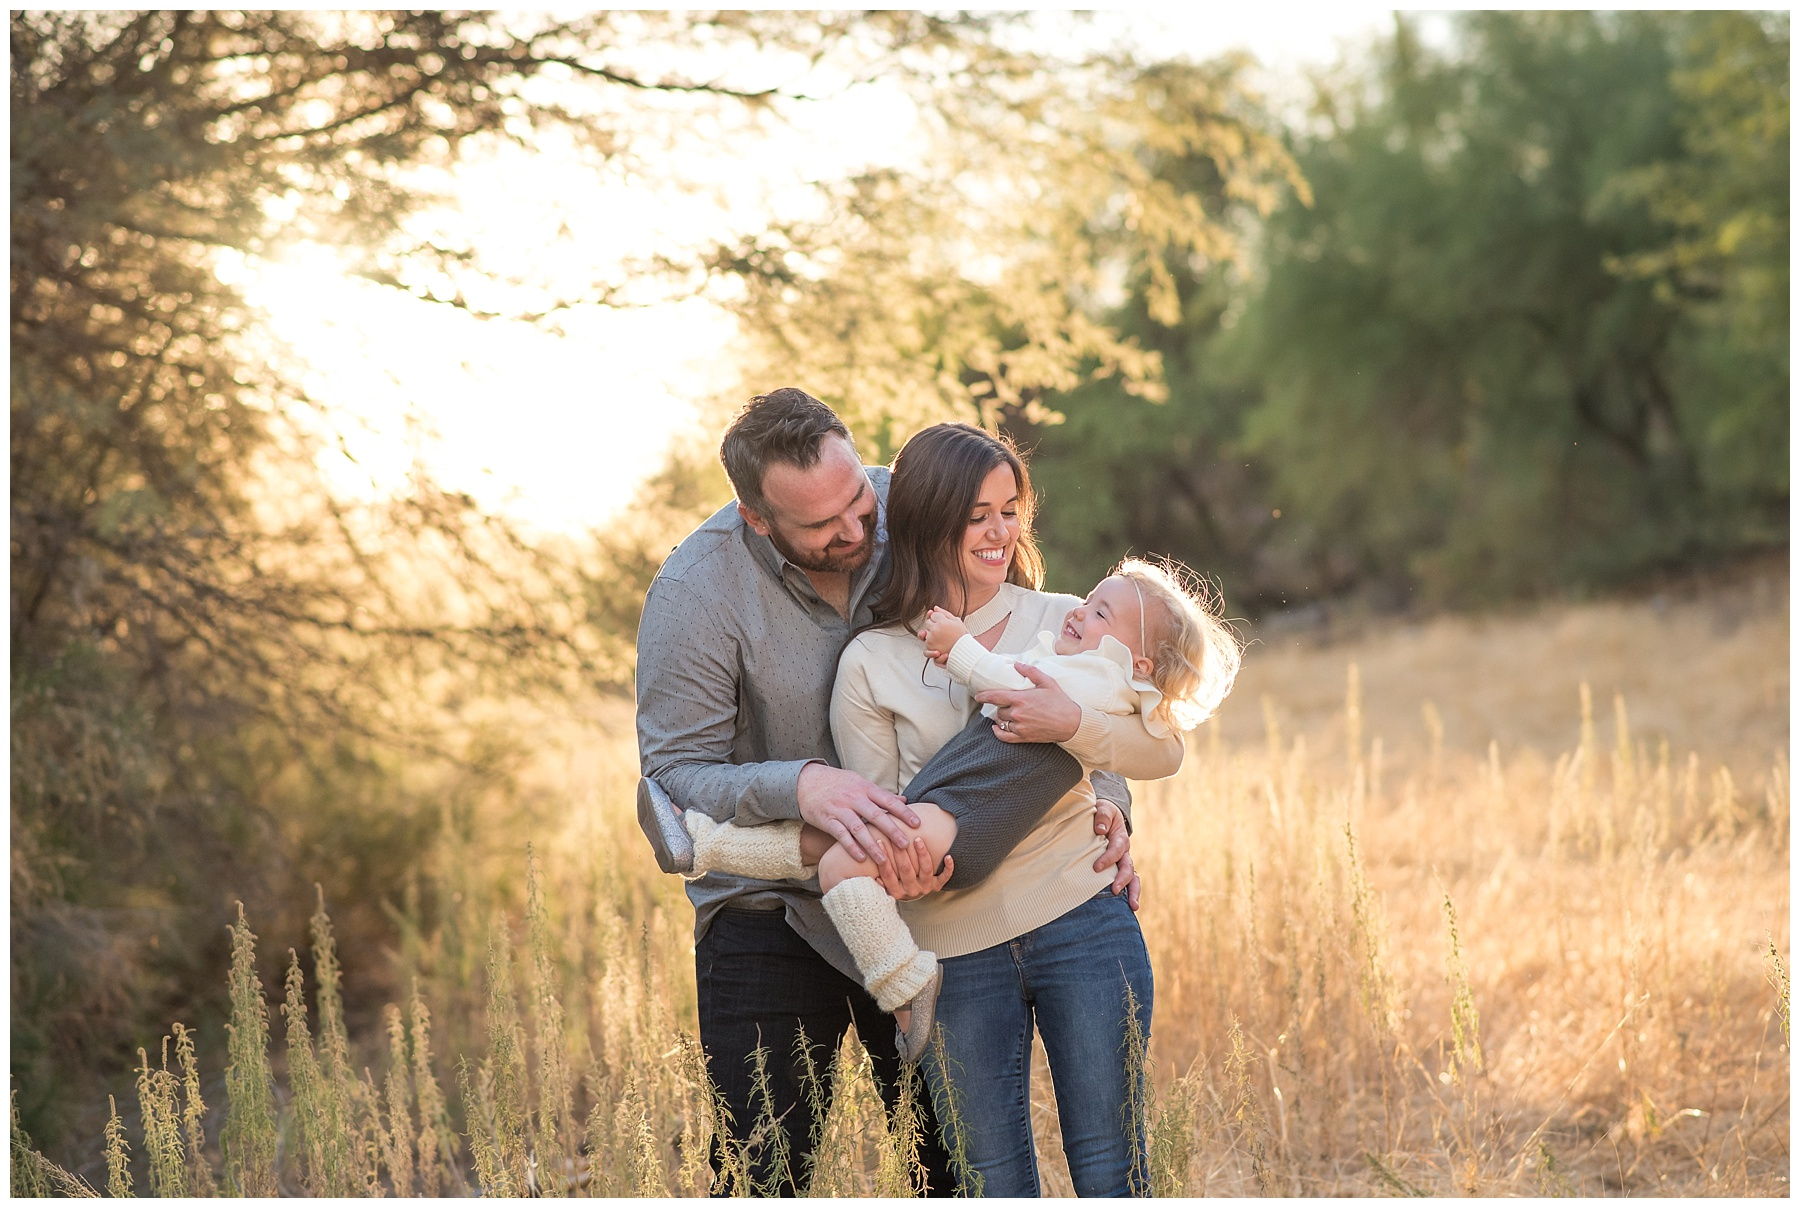 Outdoor family photo in a wheat field in Phoenix, AZ | SweetLife Photography